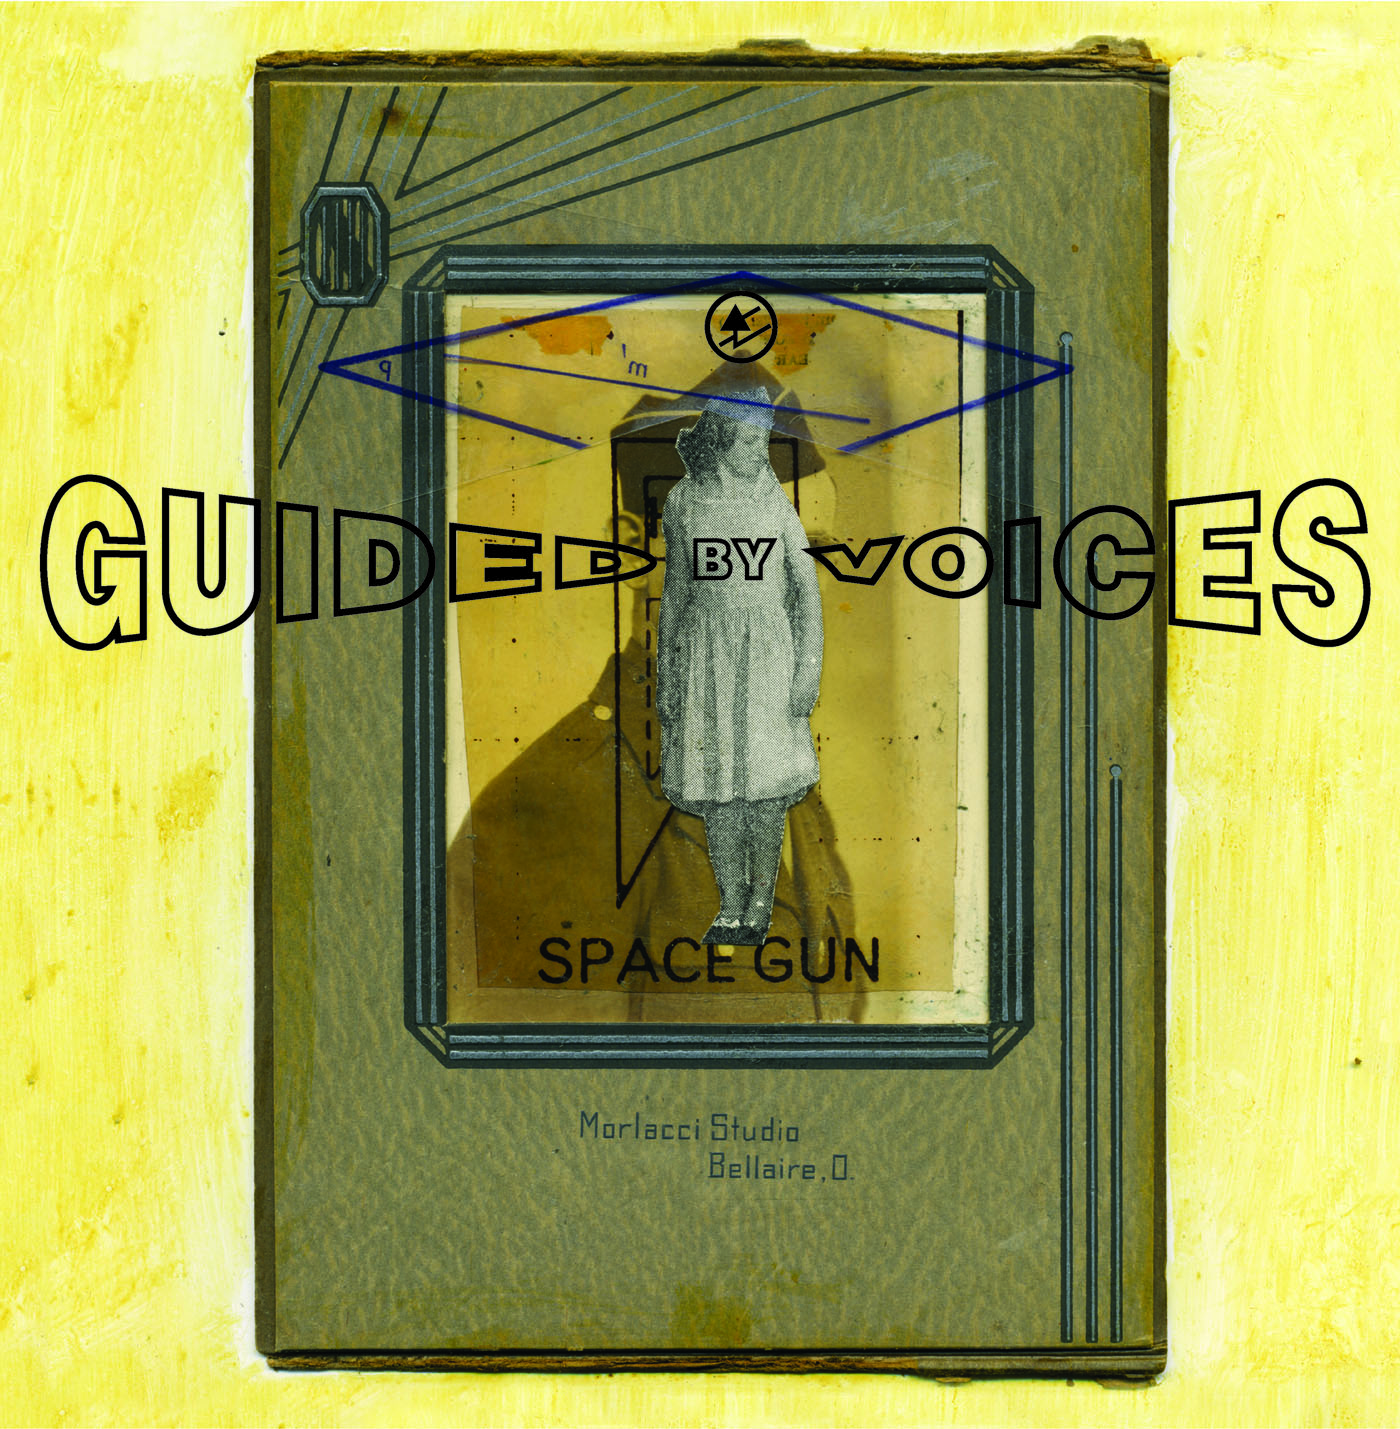 Guided By Voices' New Album Out In March